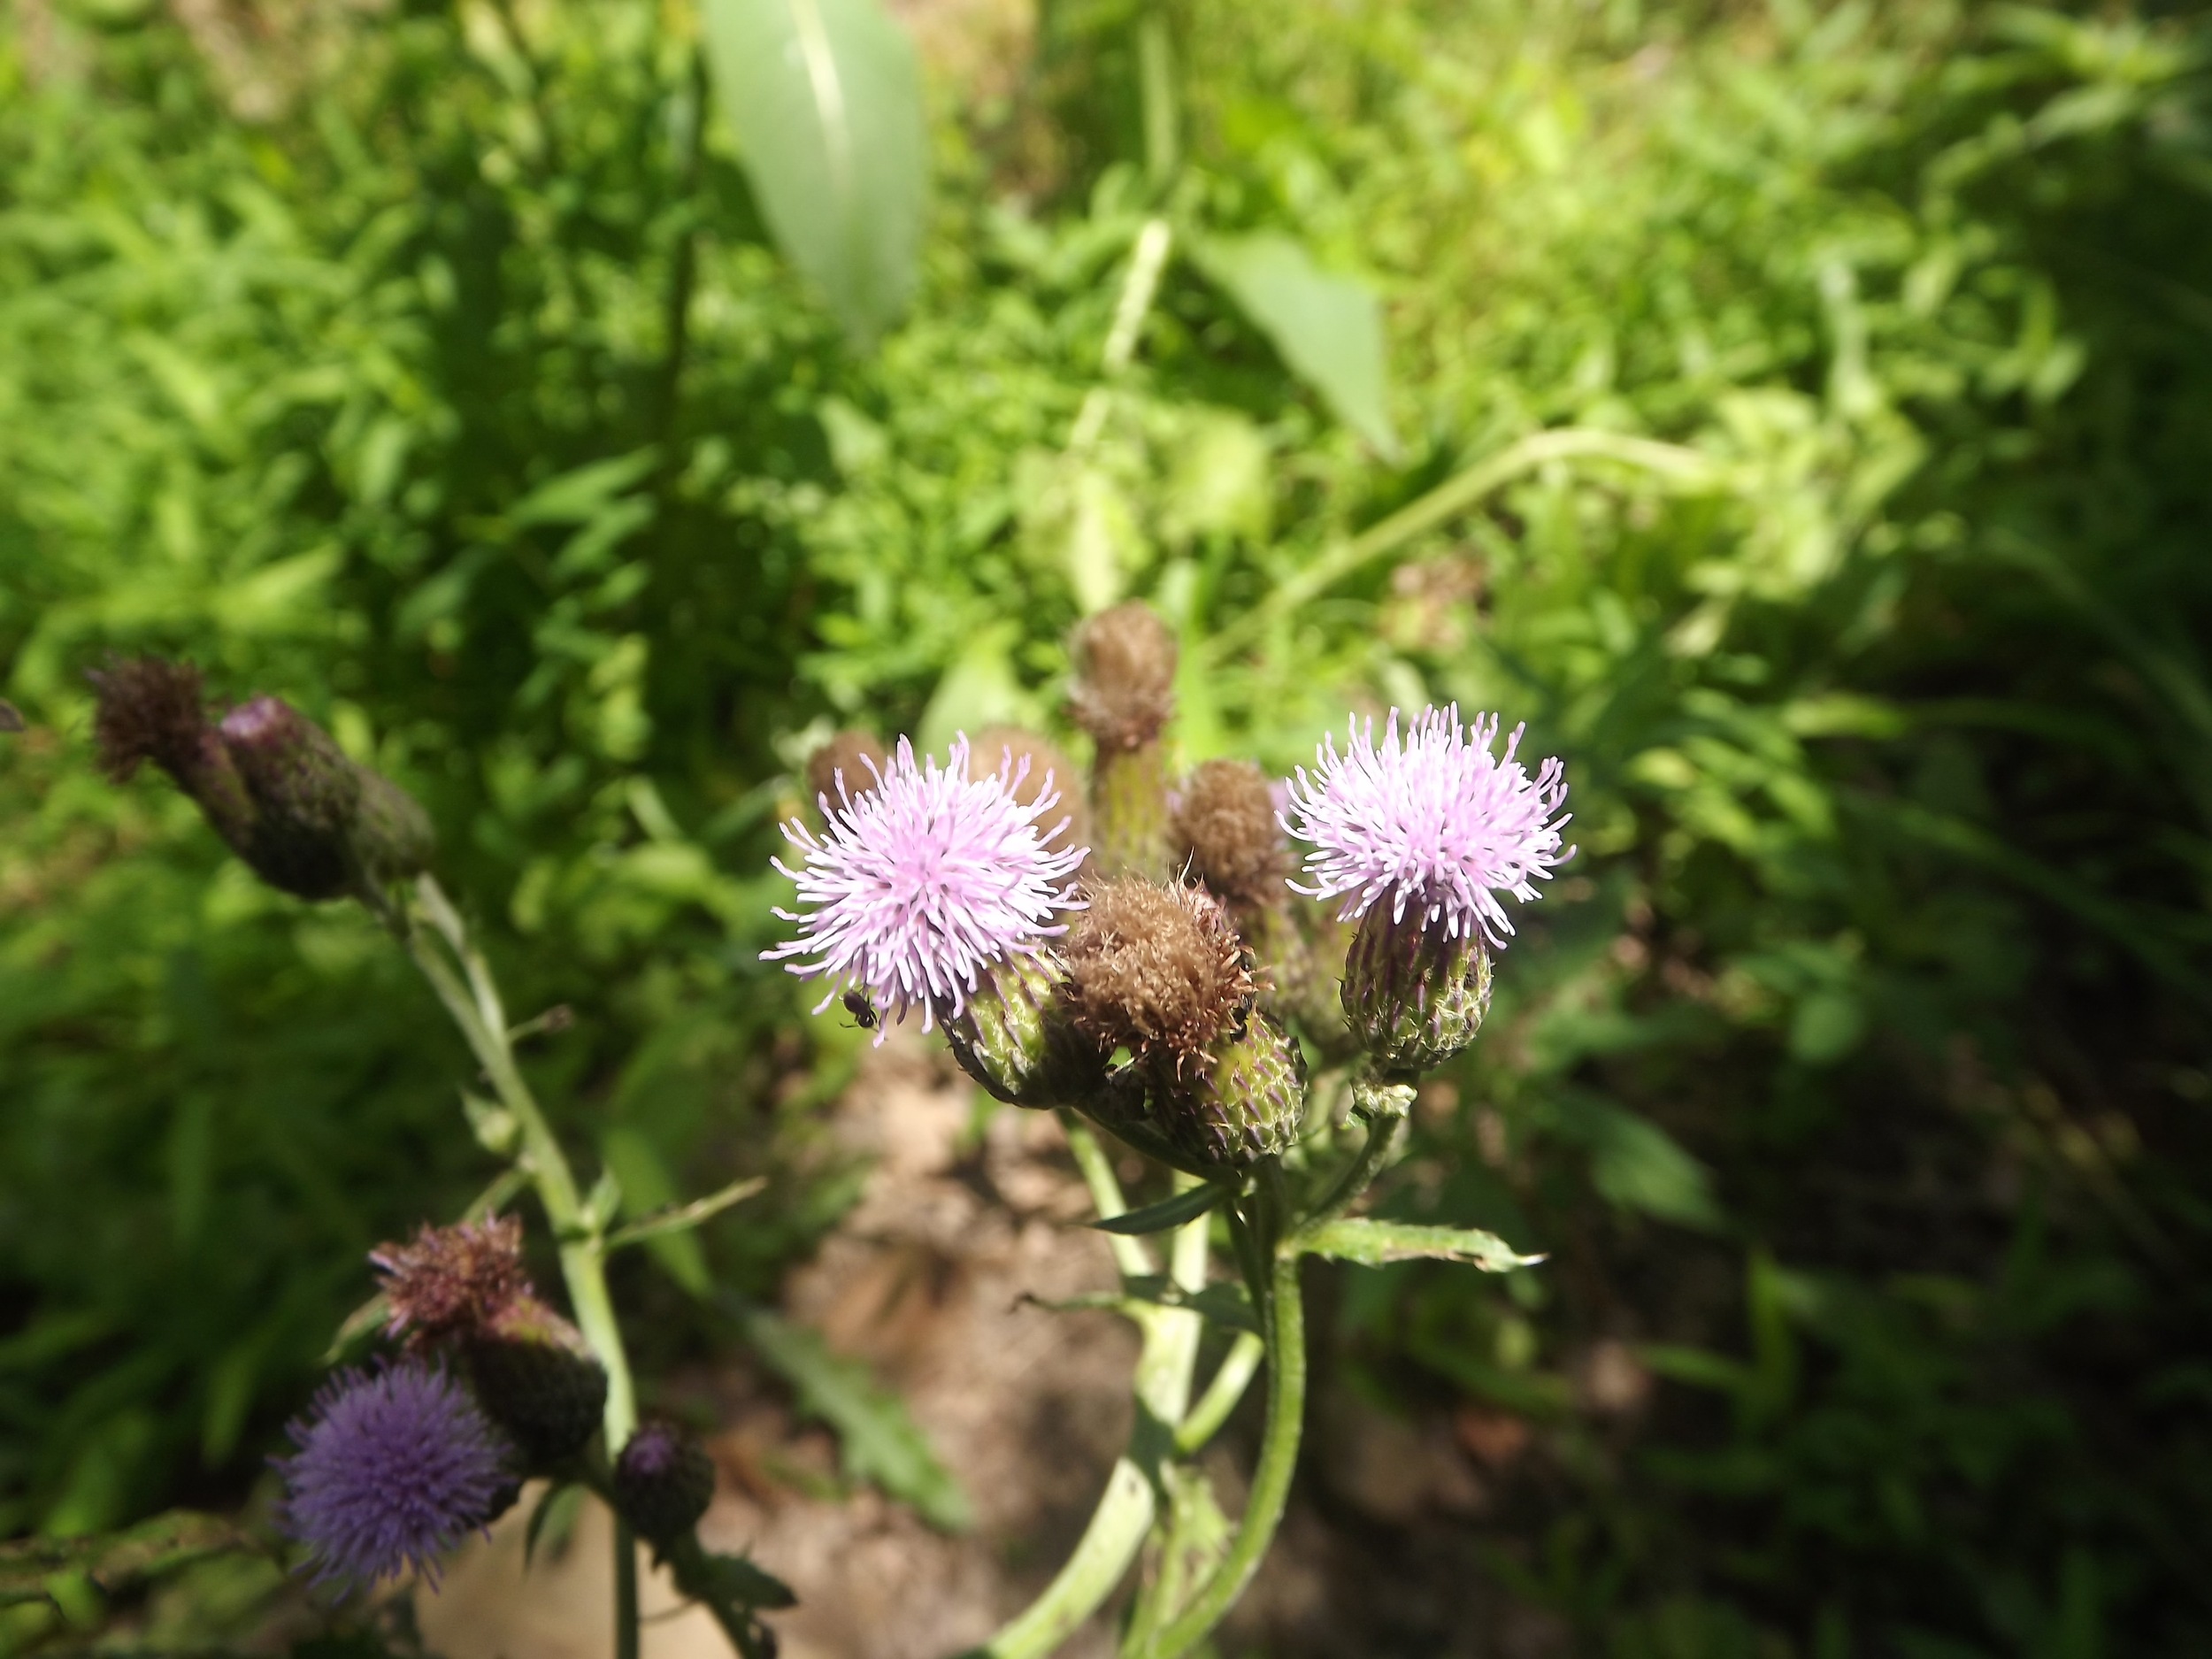 Canada Thistle ( Cirsium arvense ) Non-Native - Also known as Creeping Thistle, Canada Thistle produces a pinkish purple blossom on top of long skinny branches. Canada Thistles is not native to our area and is considered invasive in many states.